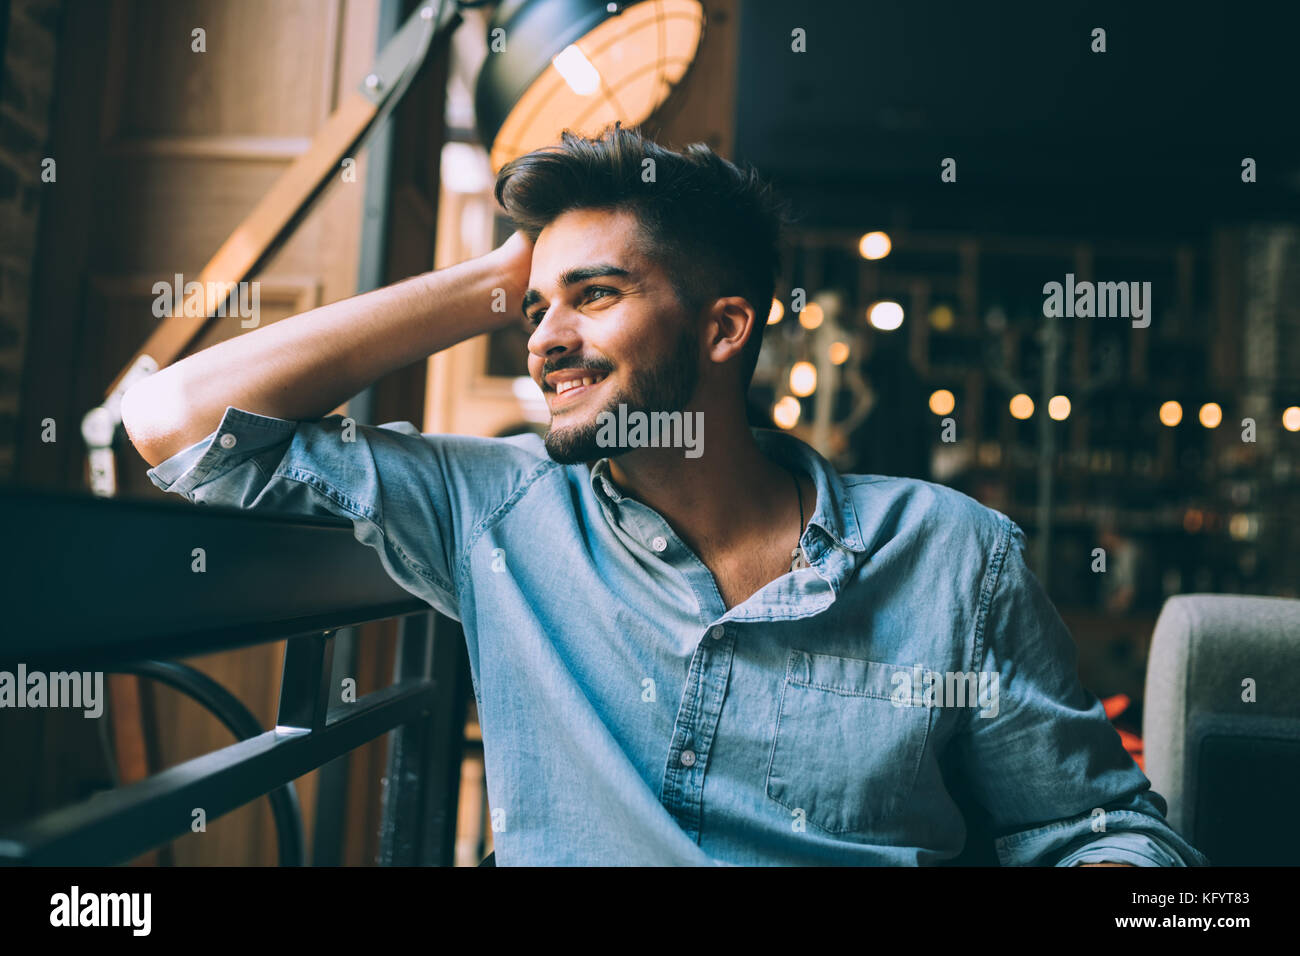 Portrait of young handsome man in blue shirt - Stock Image